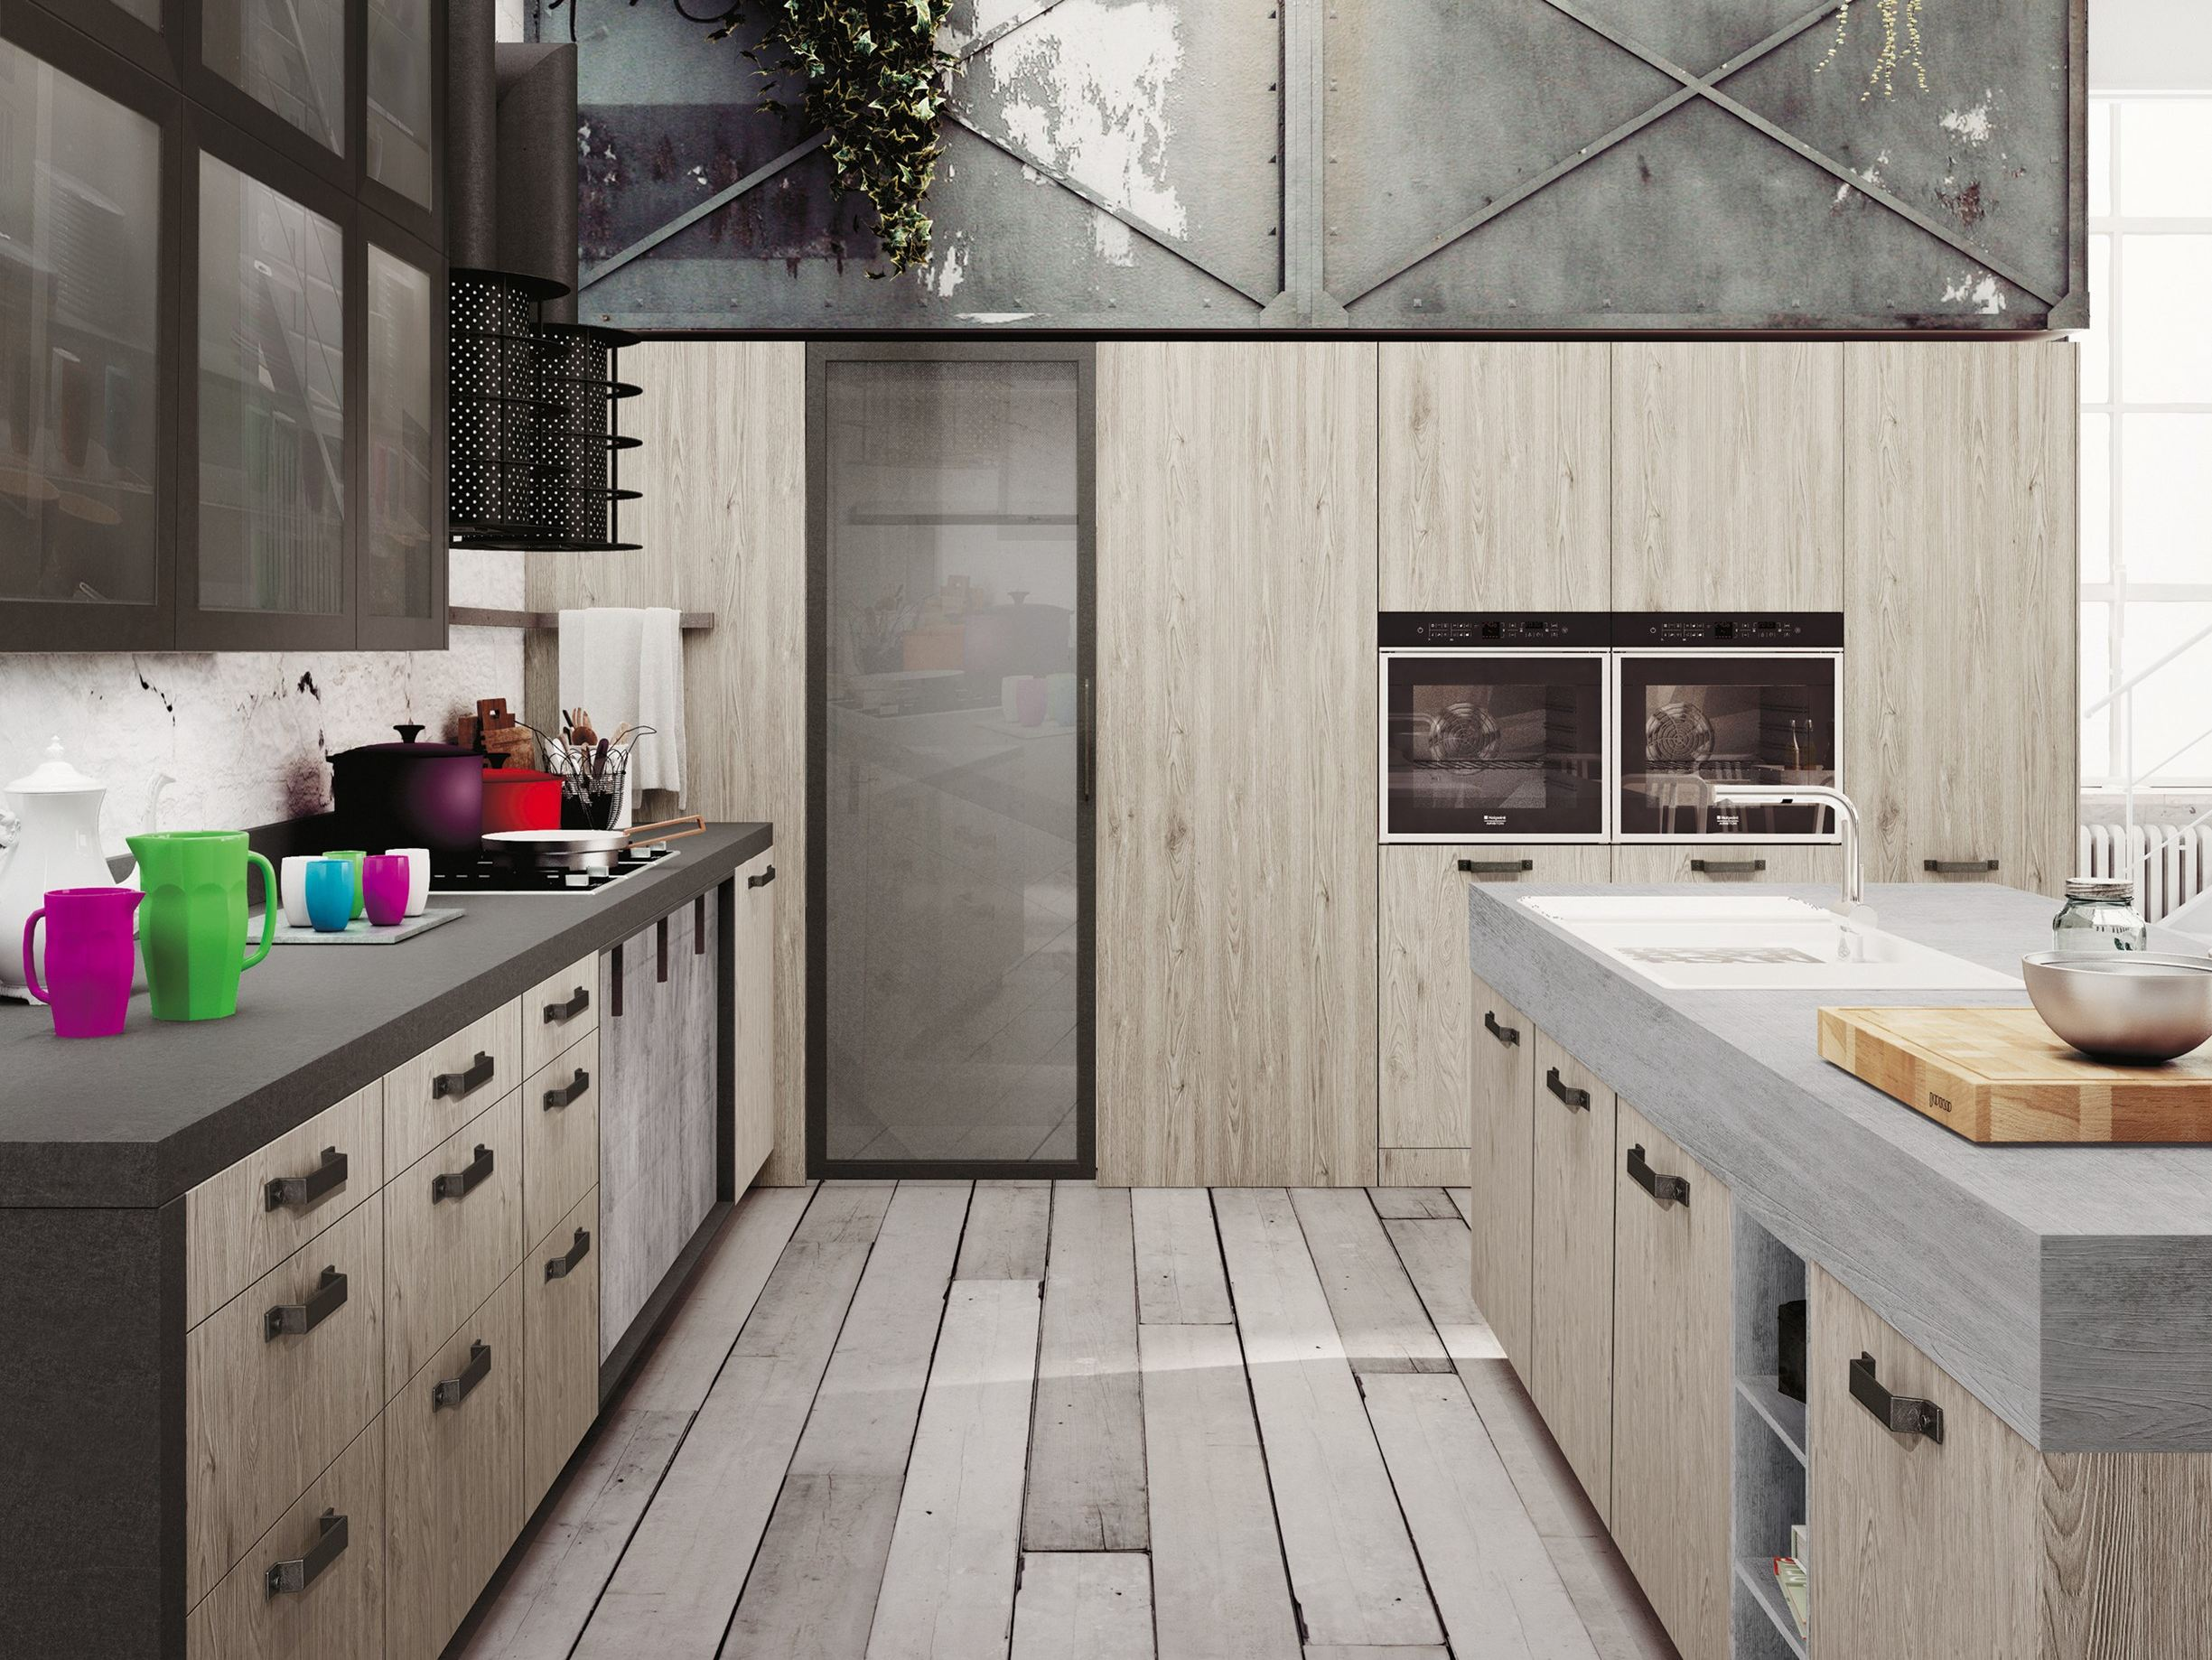 Loft kitchen with island sistema collection by snaidero for Cuisine loft